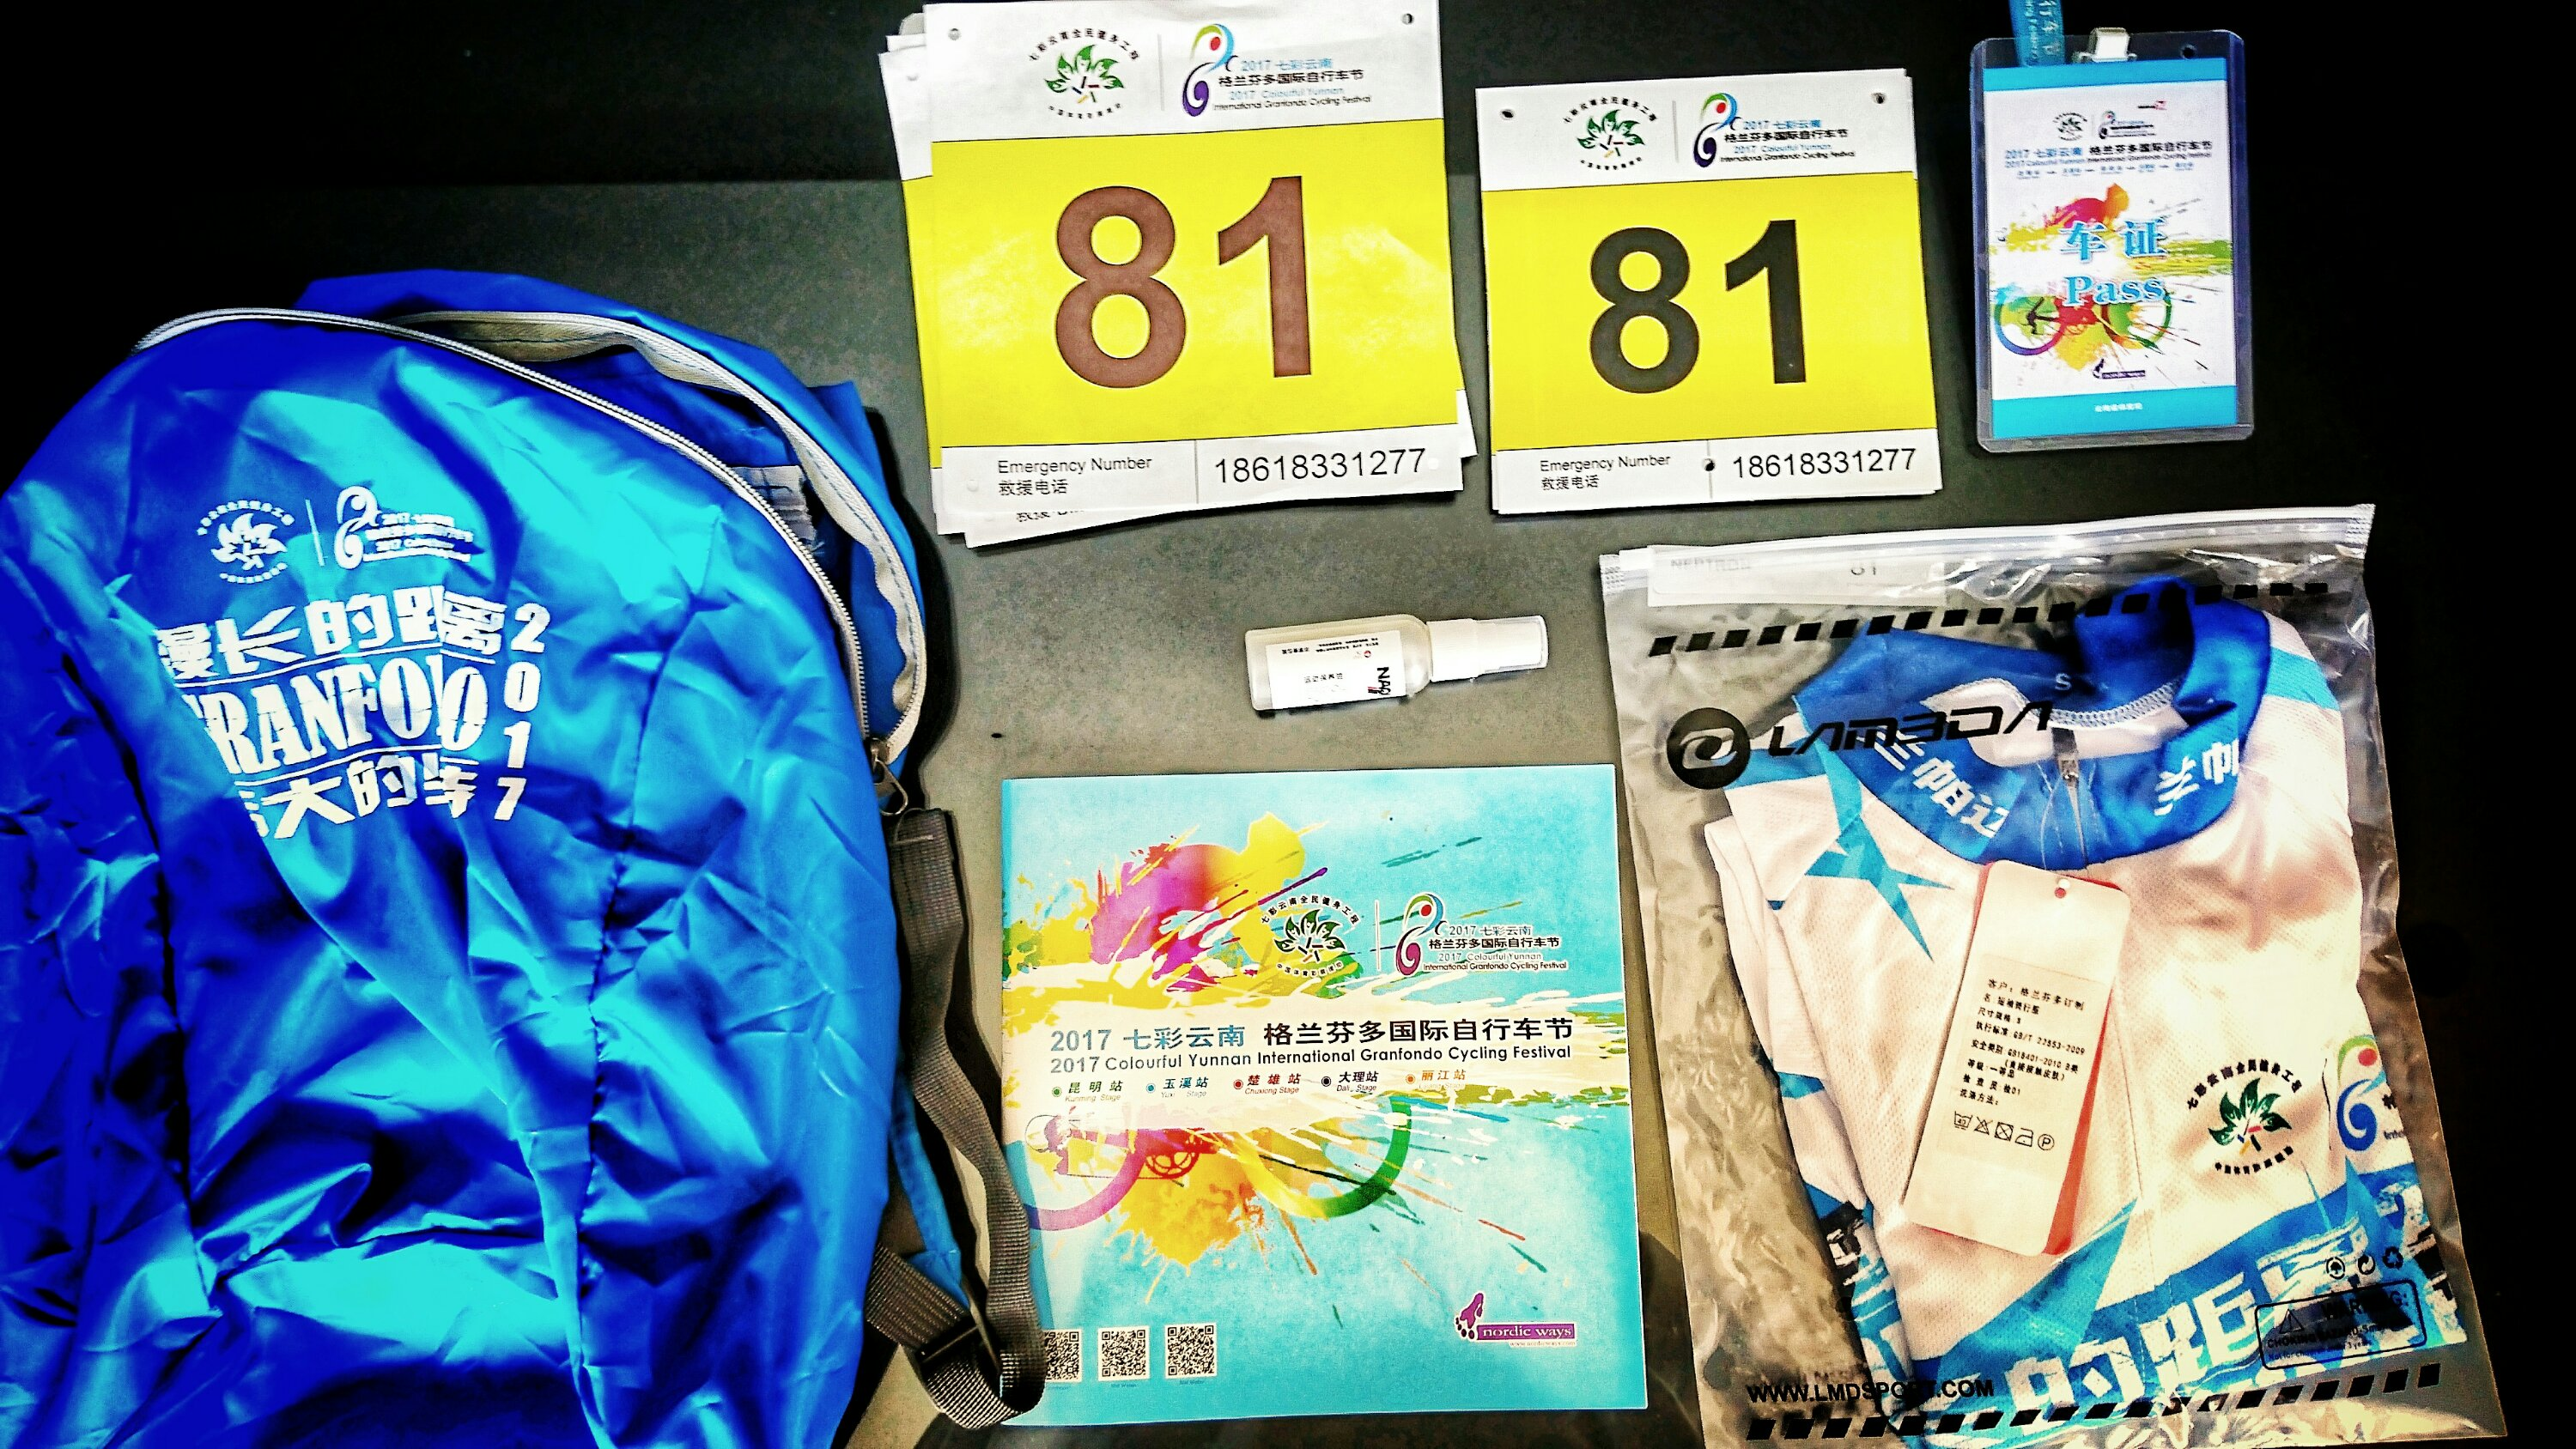 Race bag Yunnan Granfondo